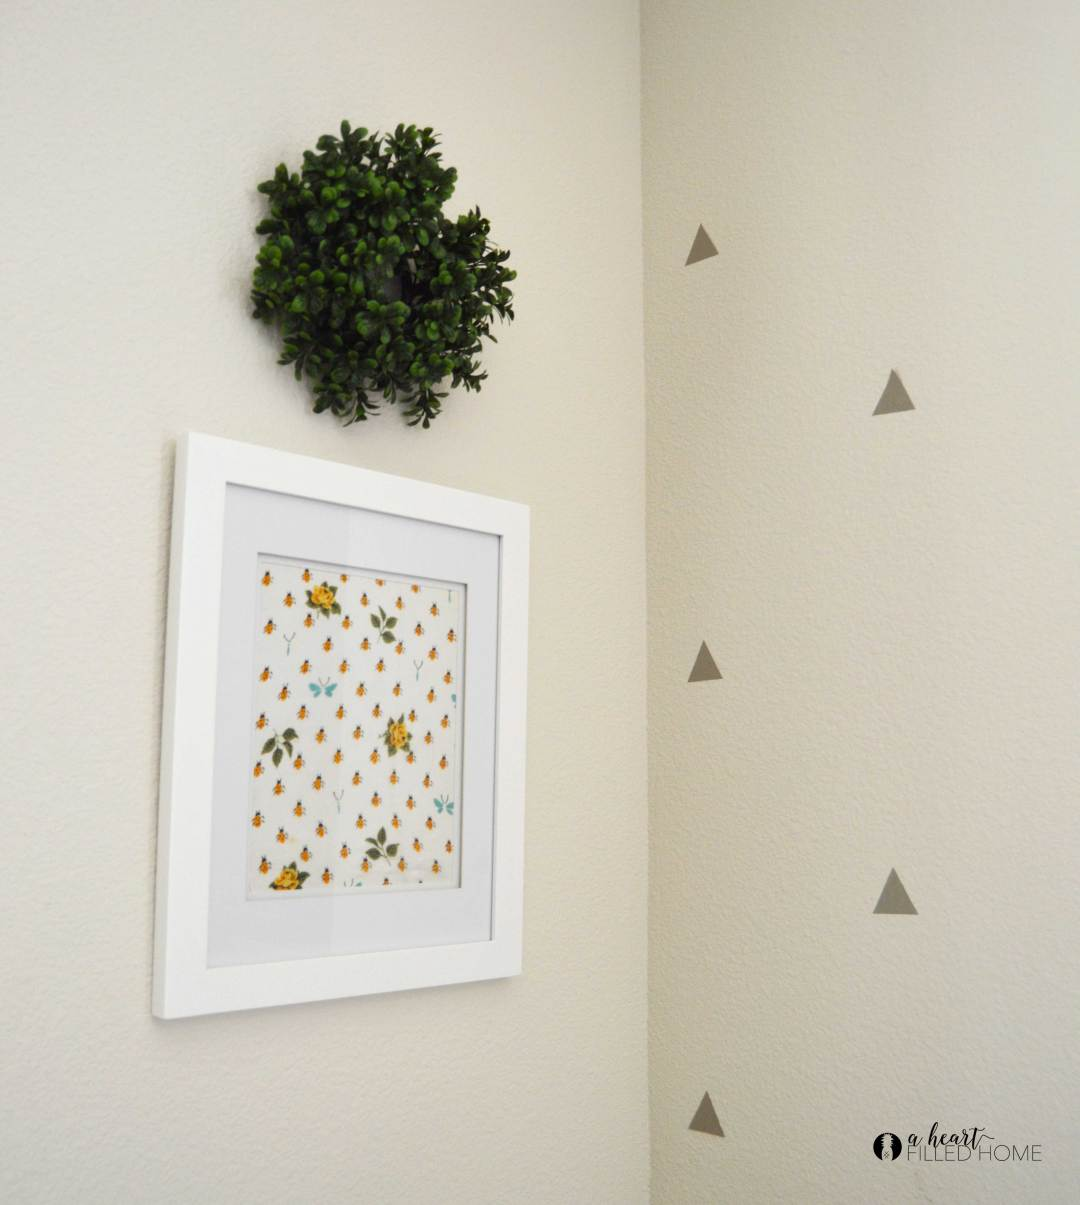 This easy DIY sentimental handkerchief framed art is so simple to make!